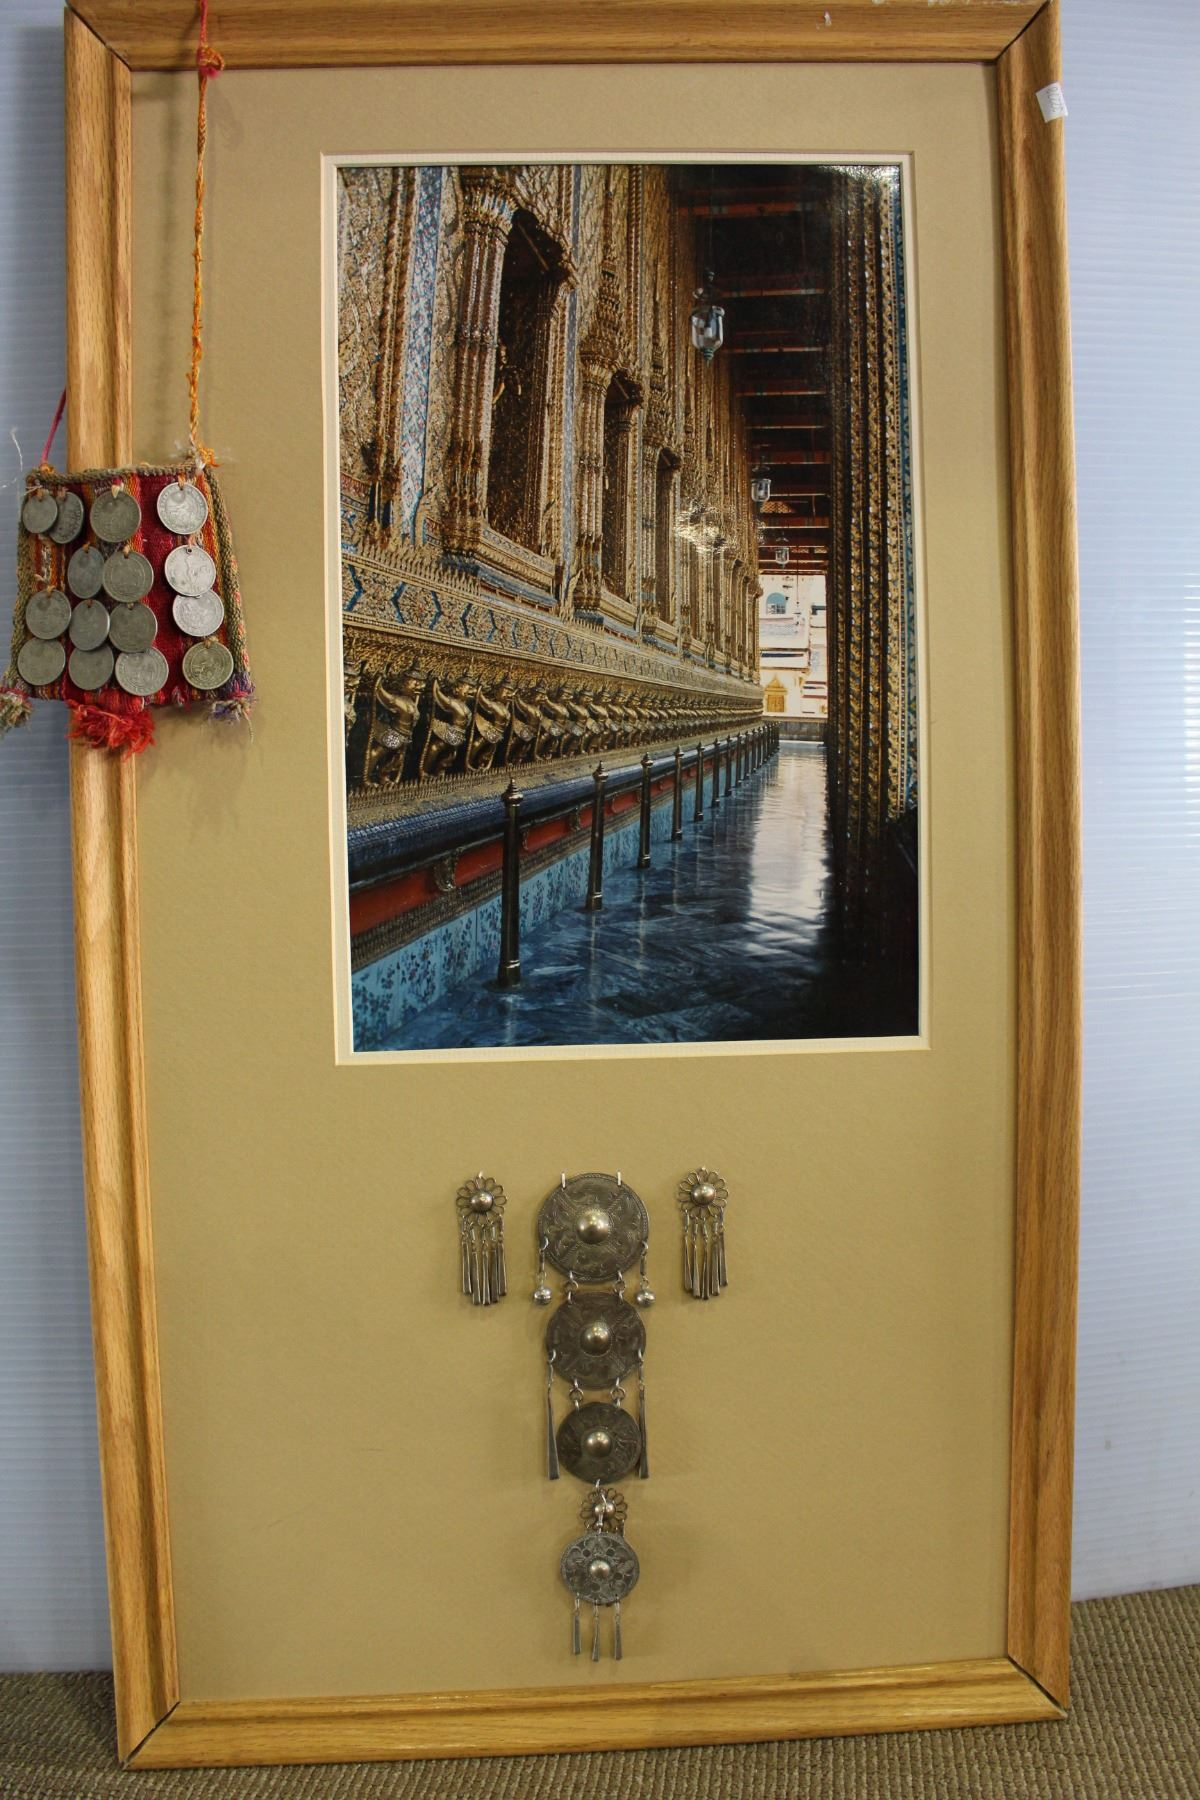 THAI TEMPLE PHOTO AND SOUVENIRS ON FRAME